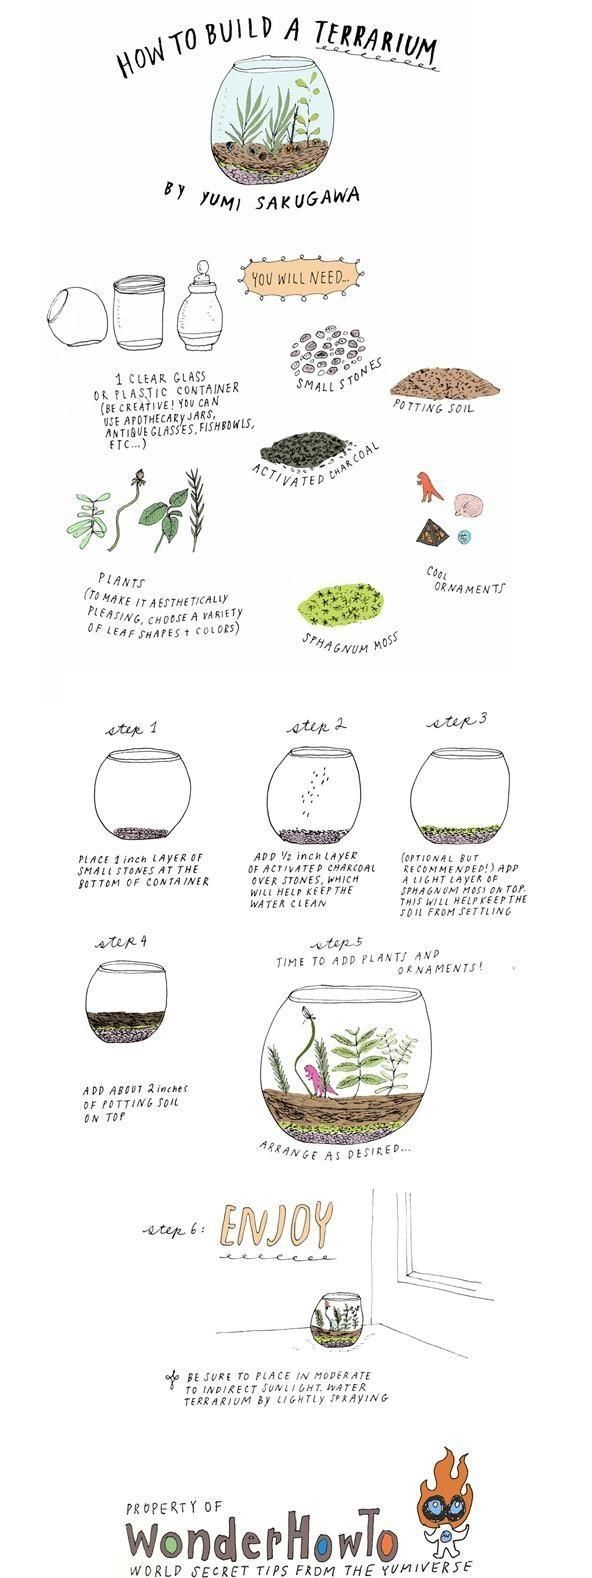 Do you have a green thumb but an extremely limited living space? Try building your own DIY terrarium. All you need is a clear glass or plastic container, a few of your favorite plants, and some cheap gardening supplies to start your own self-contained, self-sustained miniature garden. The best part about making your own terrarium is that the sky is the limit for how it can look. You can grow plants in old pickle jars, fish bowls, apothecary jars, disc spindle cases, antique vases, mason…